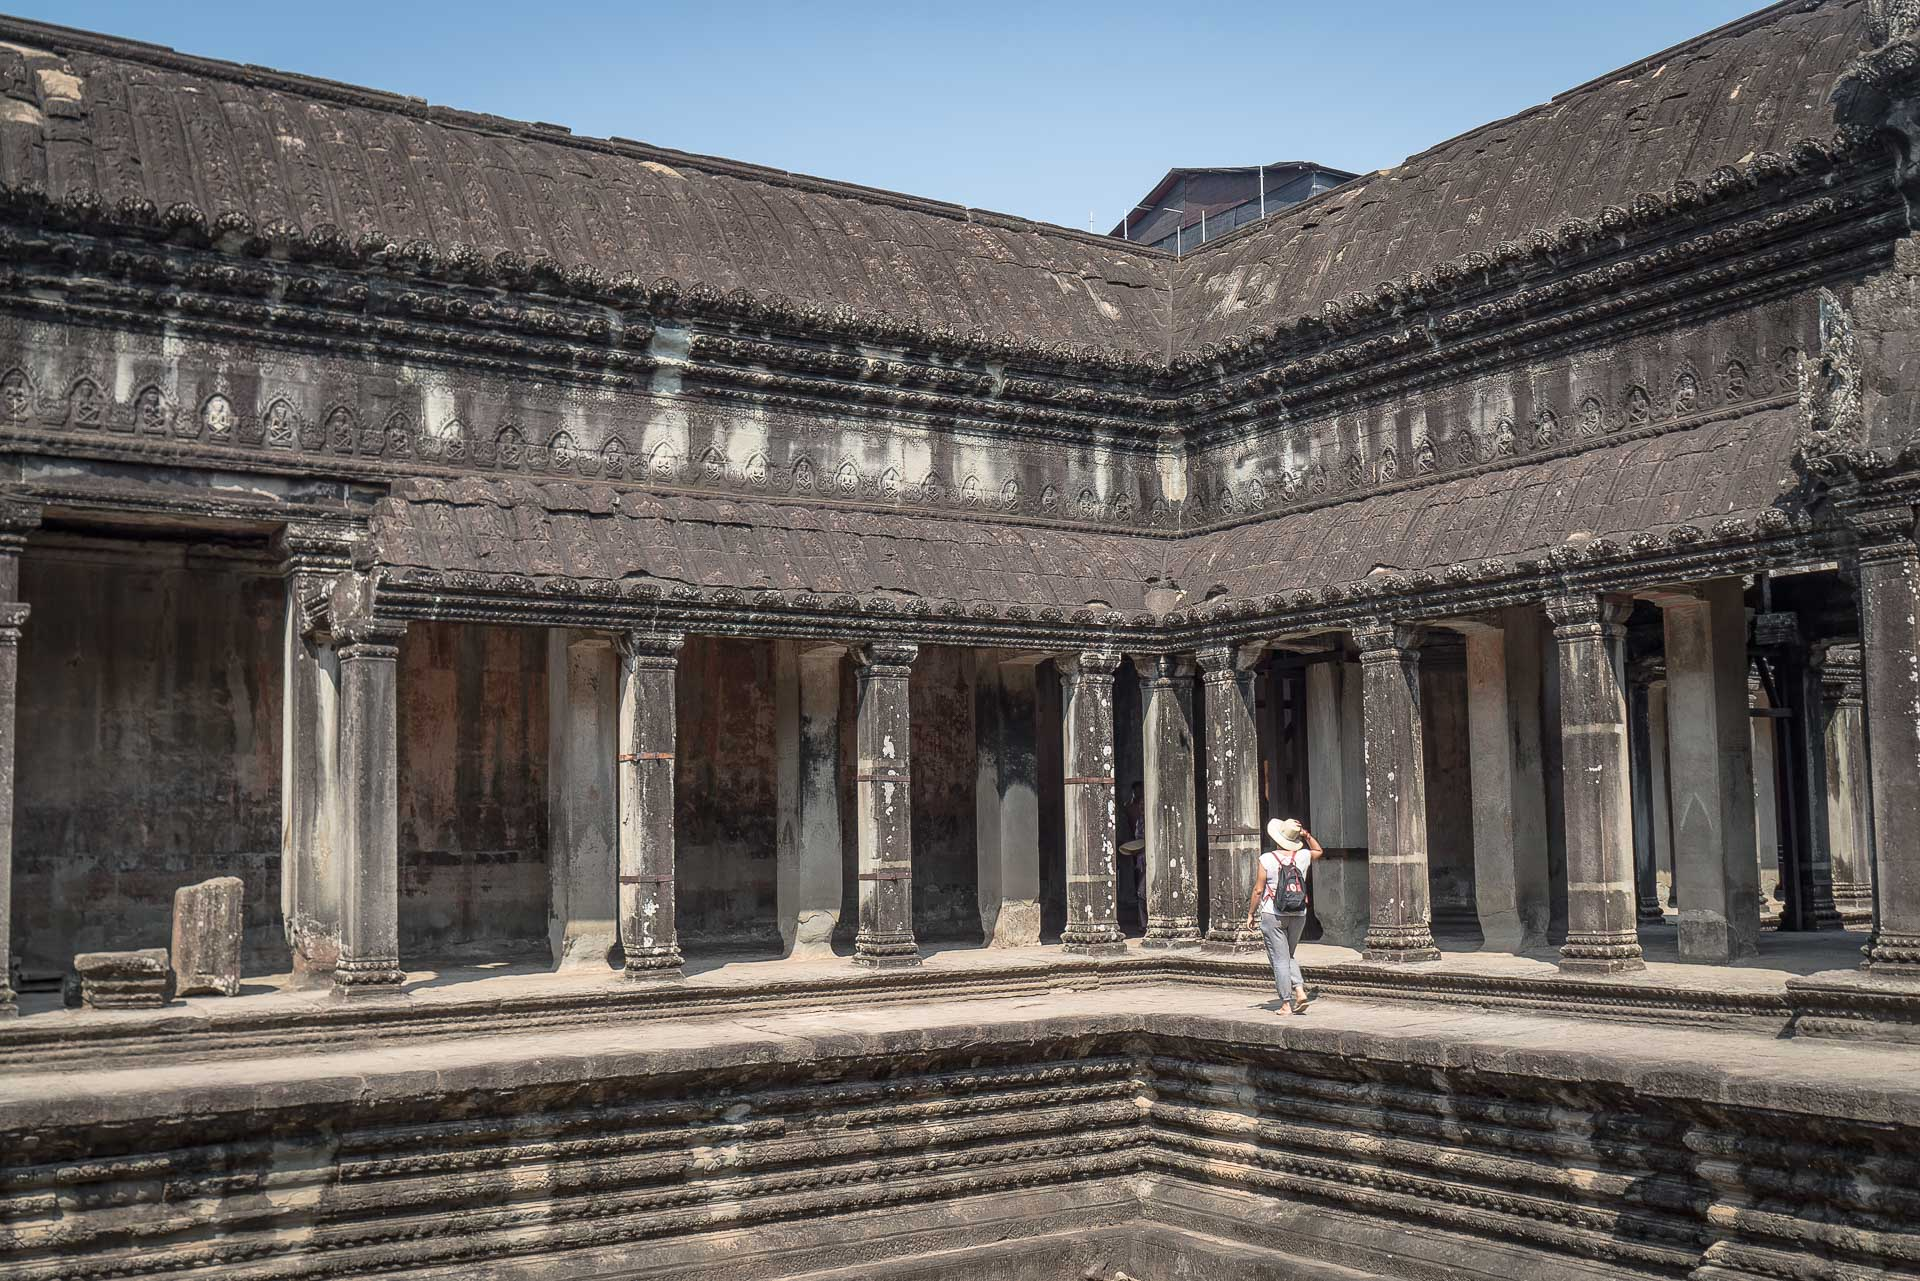 Lesvoyageuses-guide-voyage-Siem-reap-angkor-temples-Cambodge-7